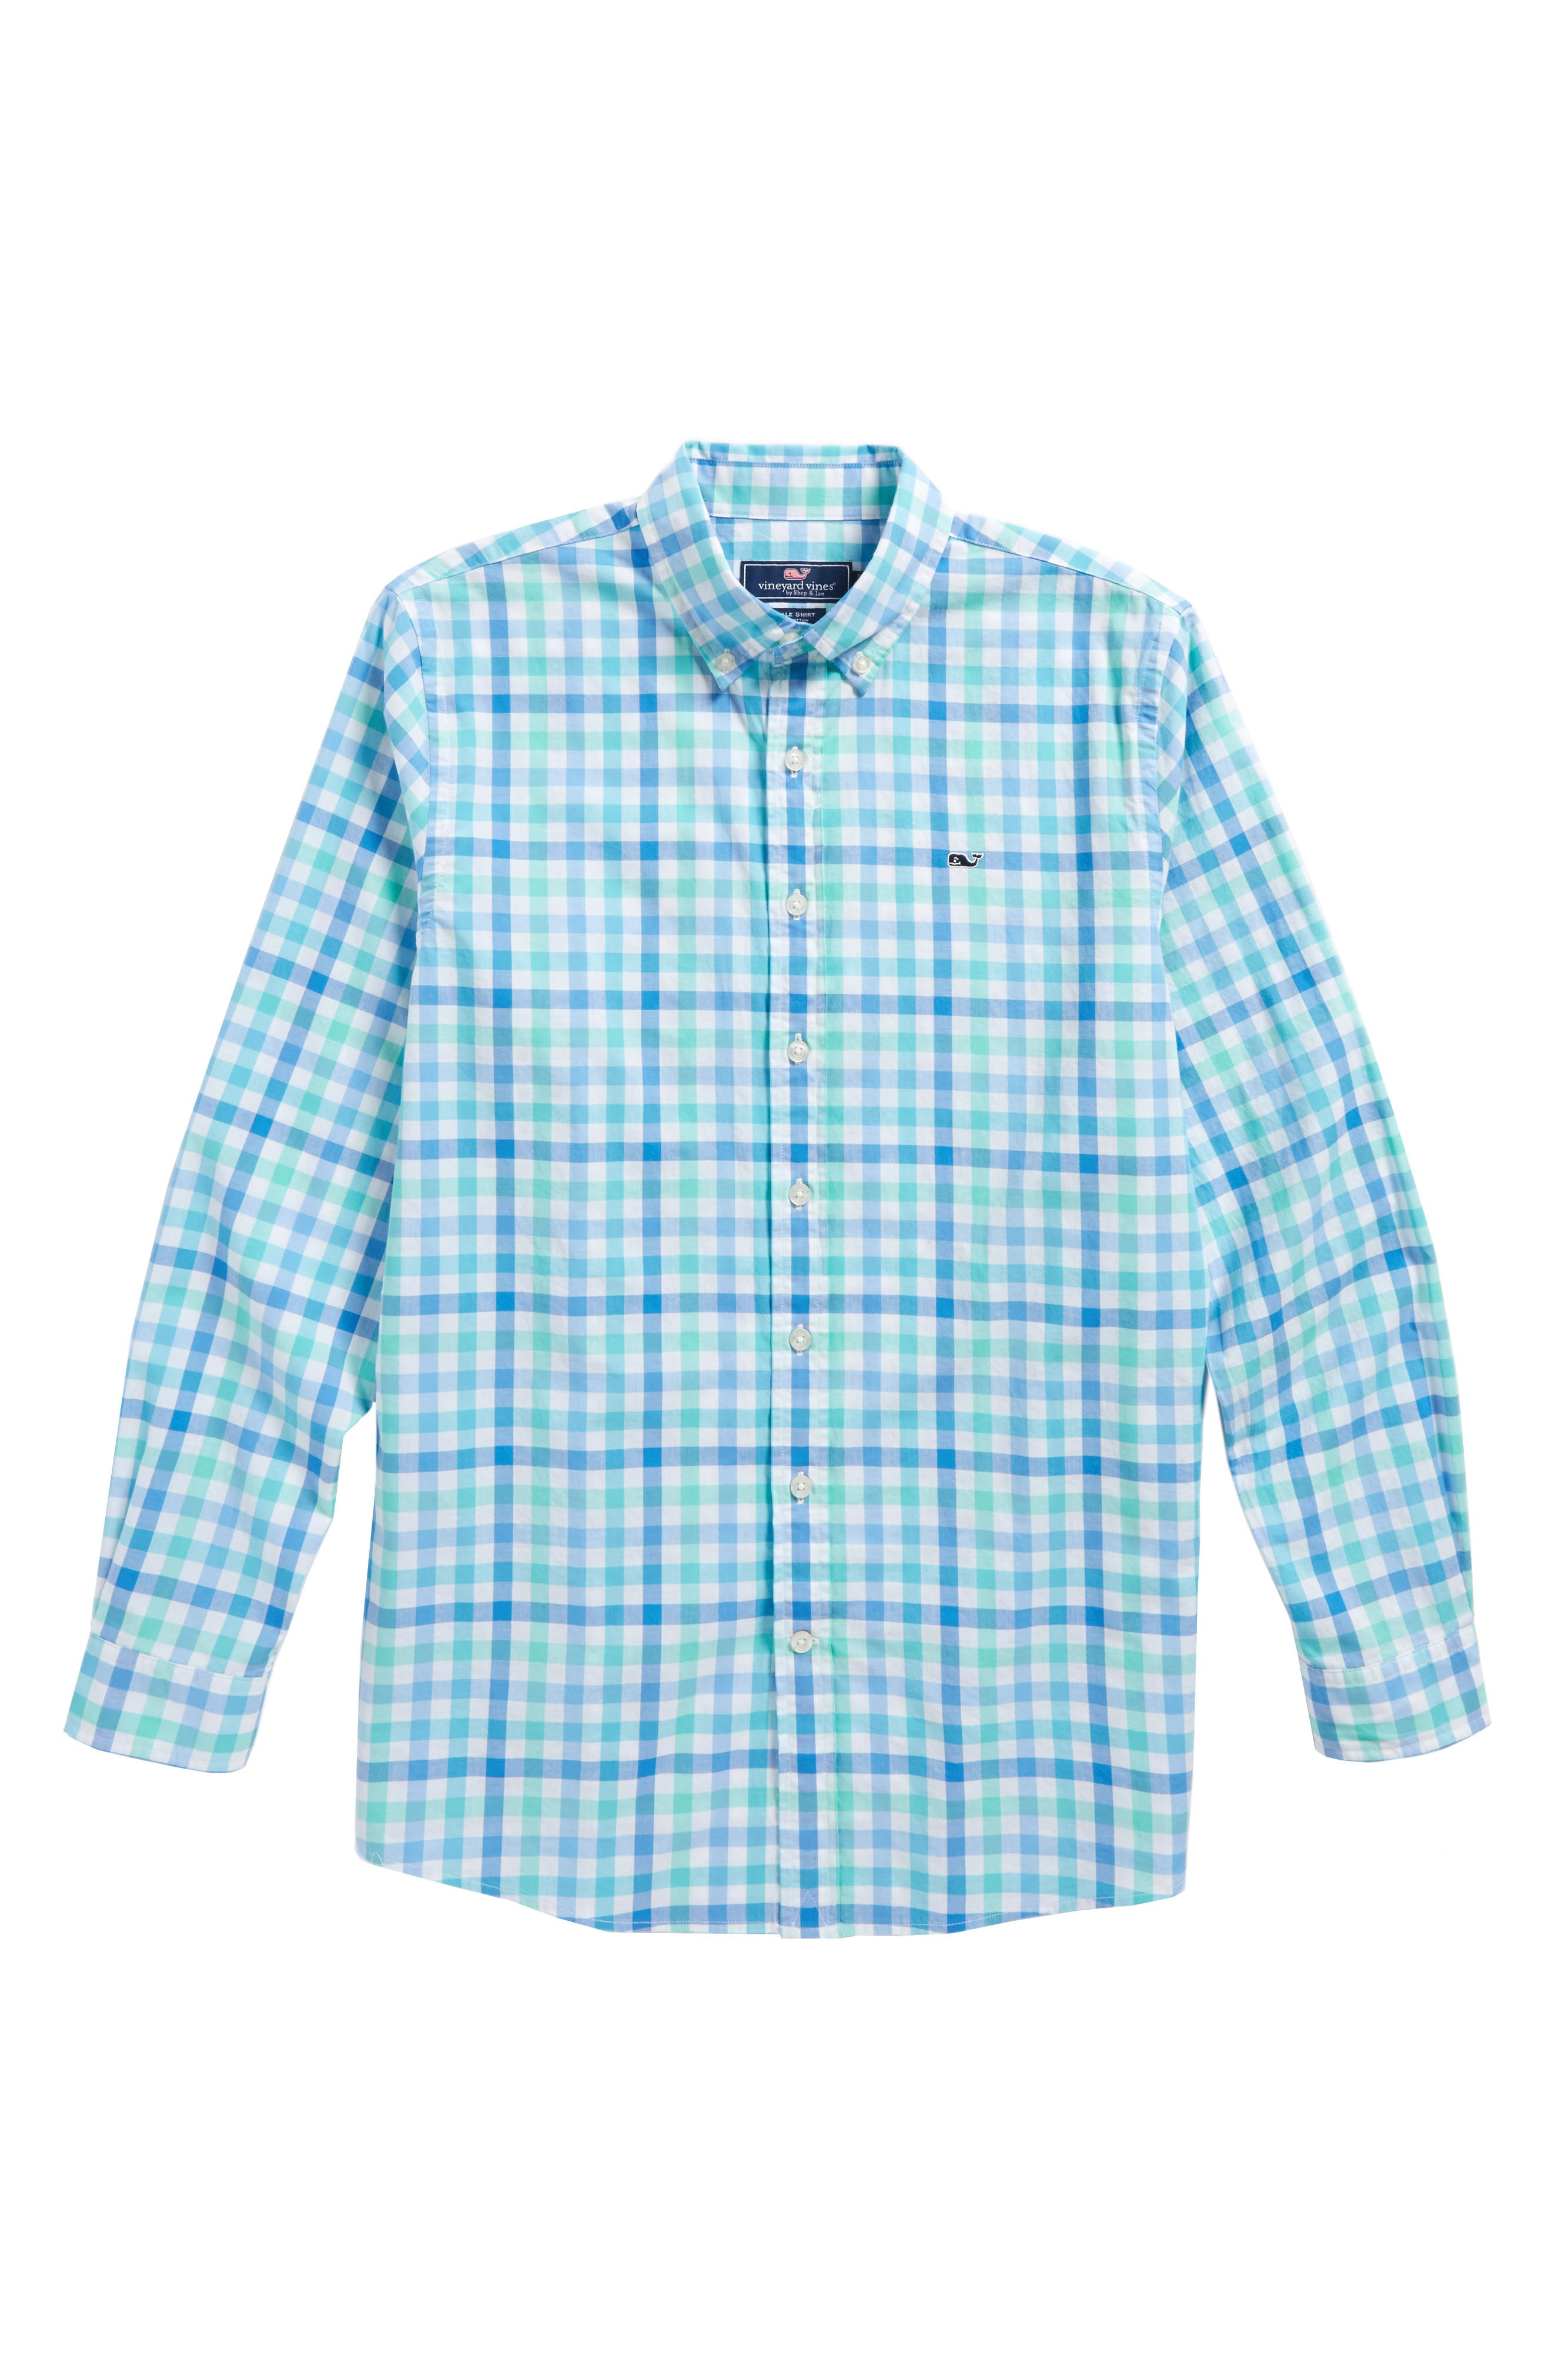 Eagle's Nest Gingham Whale Shirt,                         Main,                         color, 440